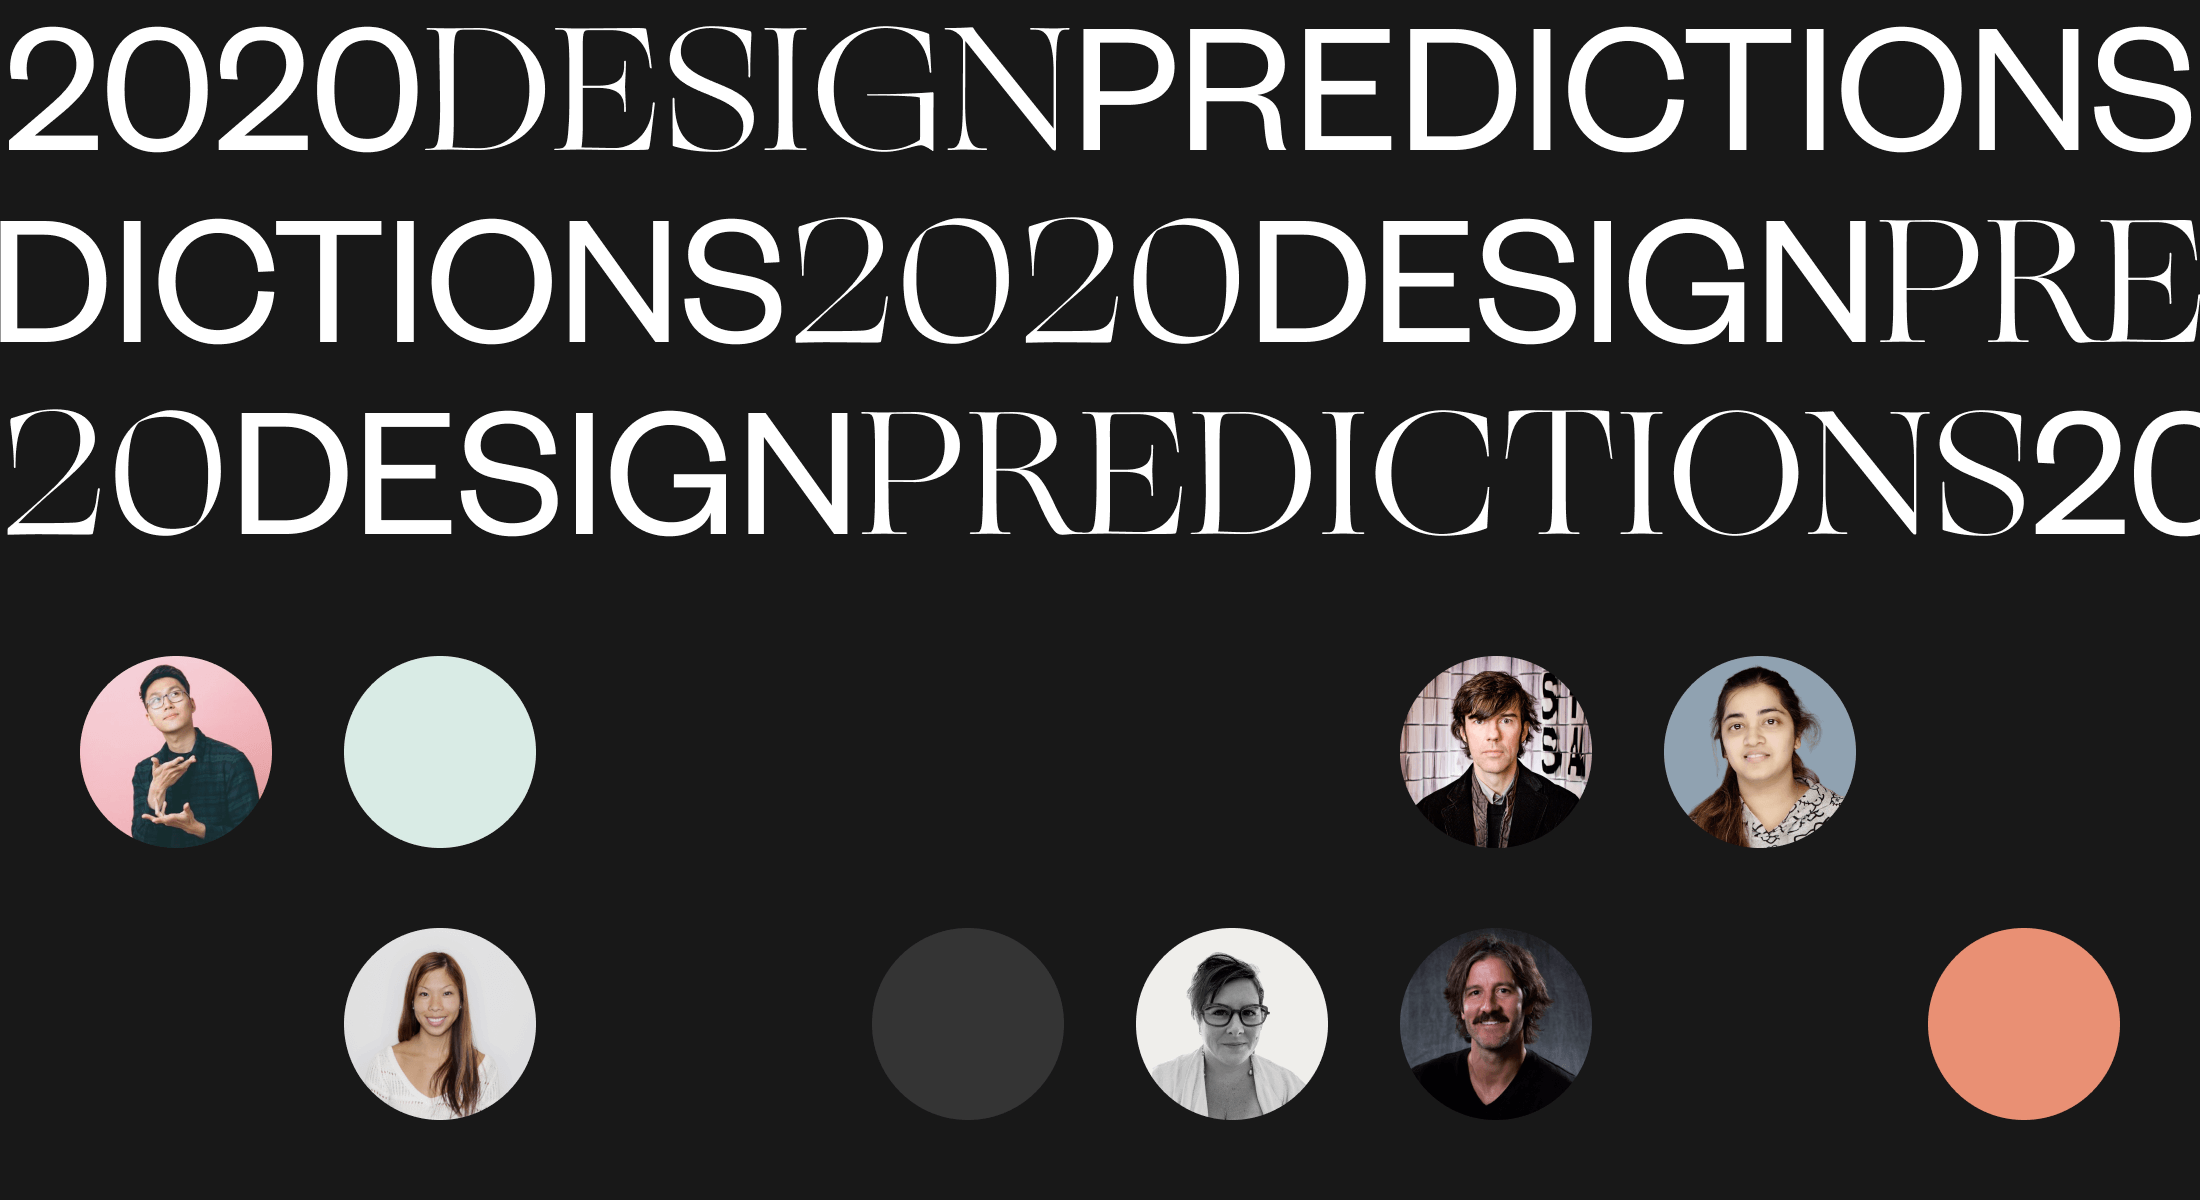 Design Trends Predictions for 2020